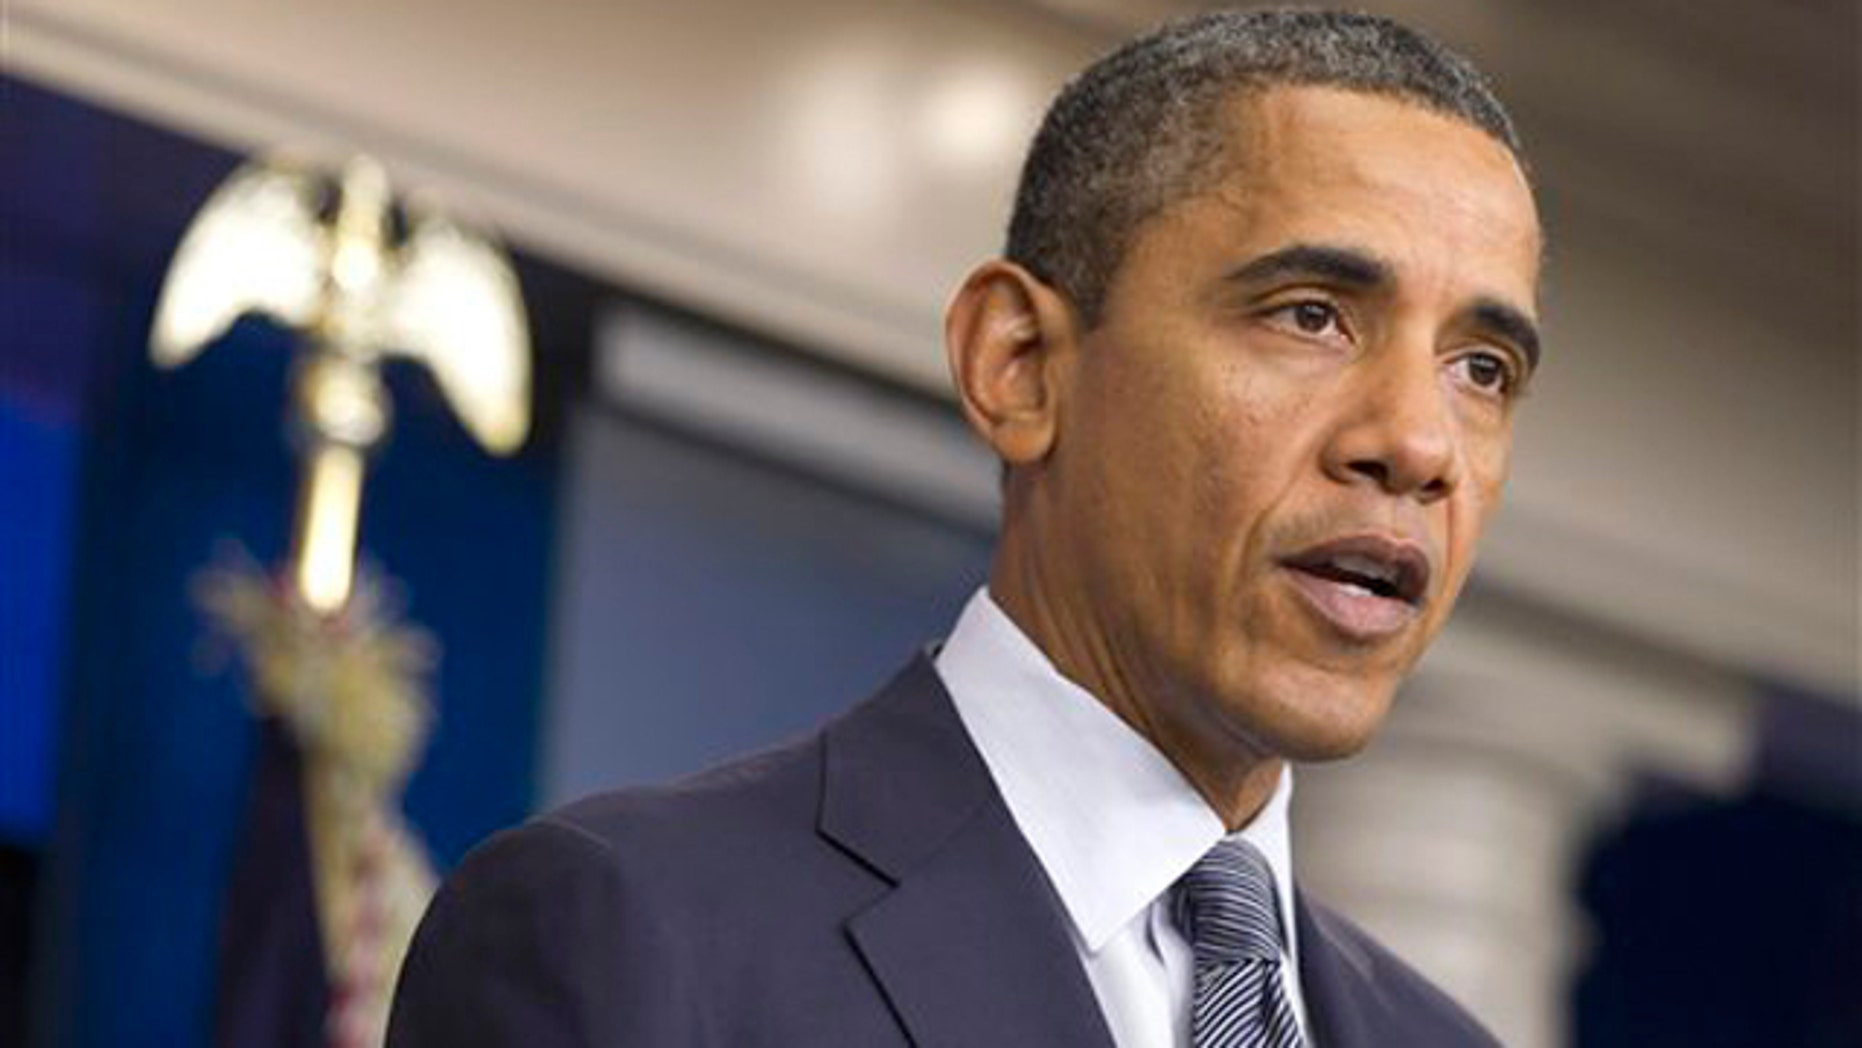 In this Oct. 21 file photo, President Obama speaks in the briefing room of the White House.